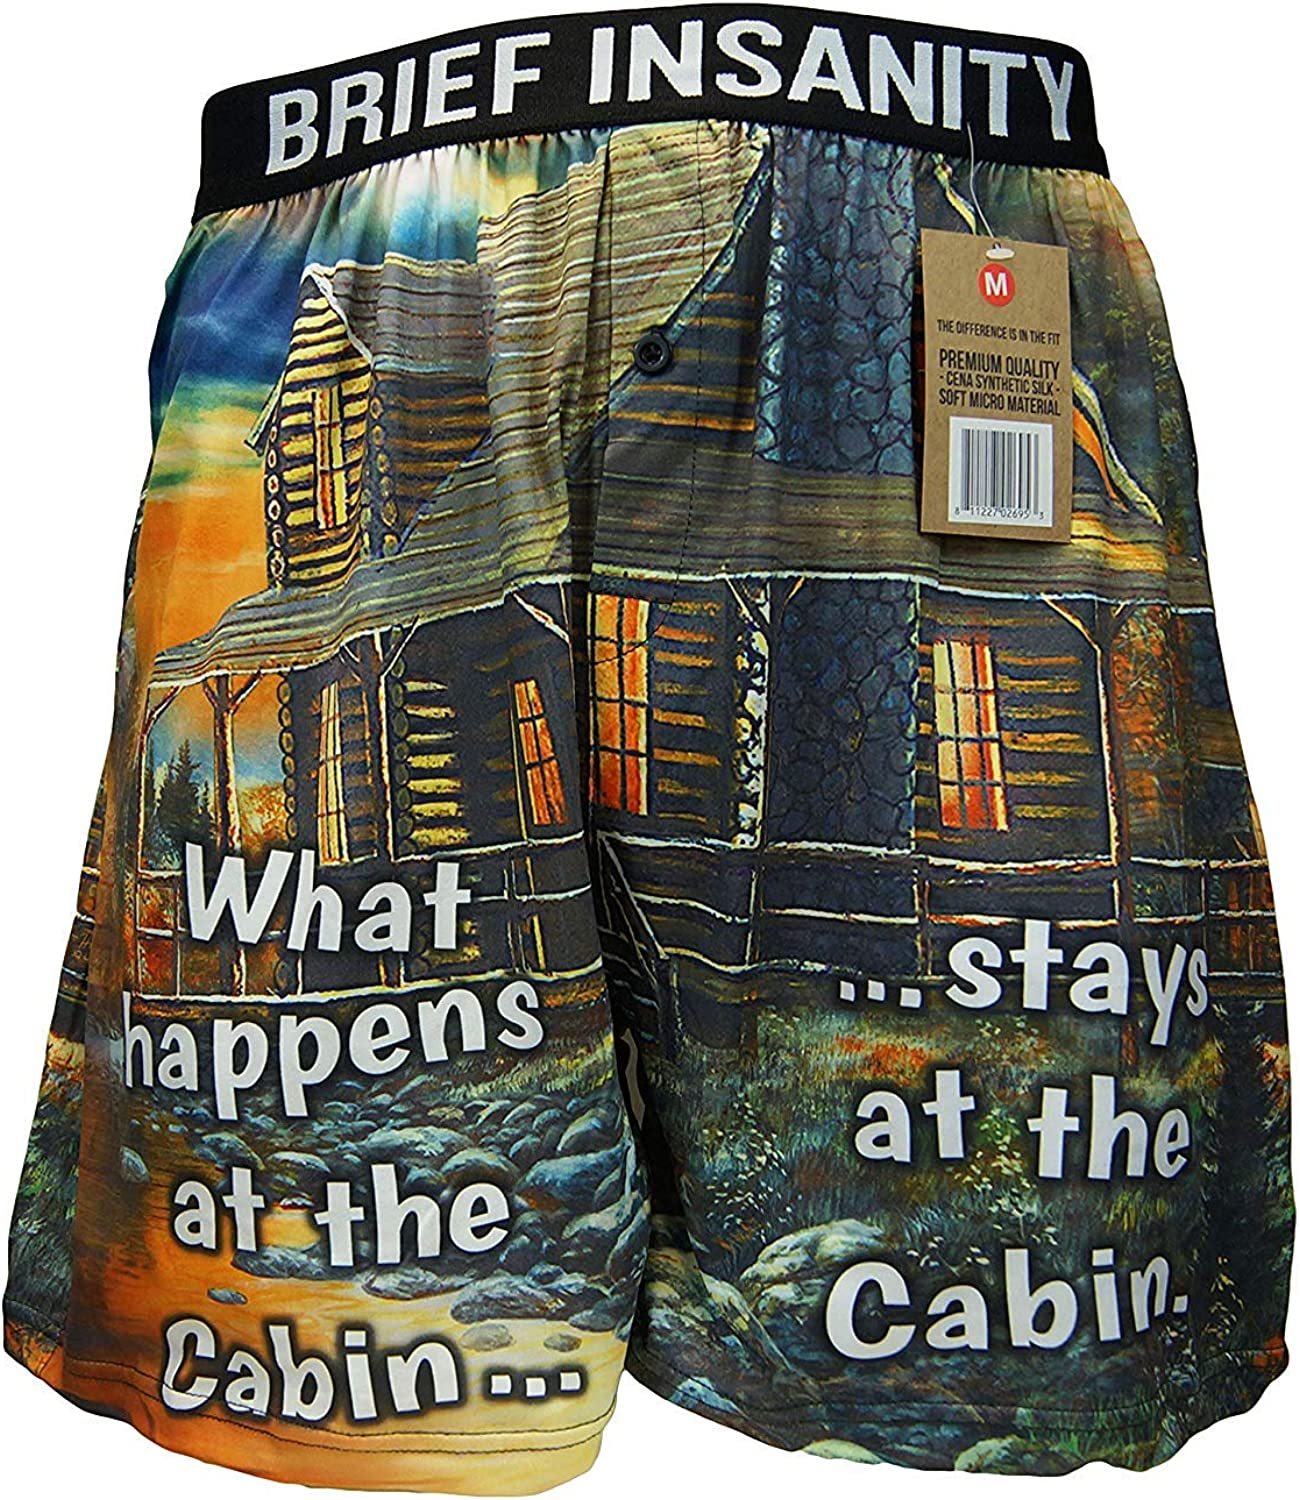 BRIEF INSANITY Boxer Briefs for Men and Women | Cabin Boxer Shorts - Soft, Comfy Underwear